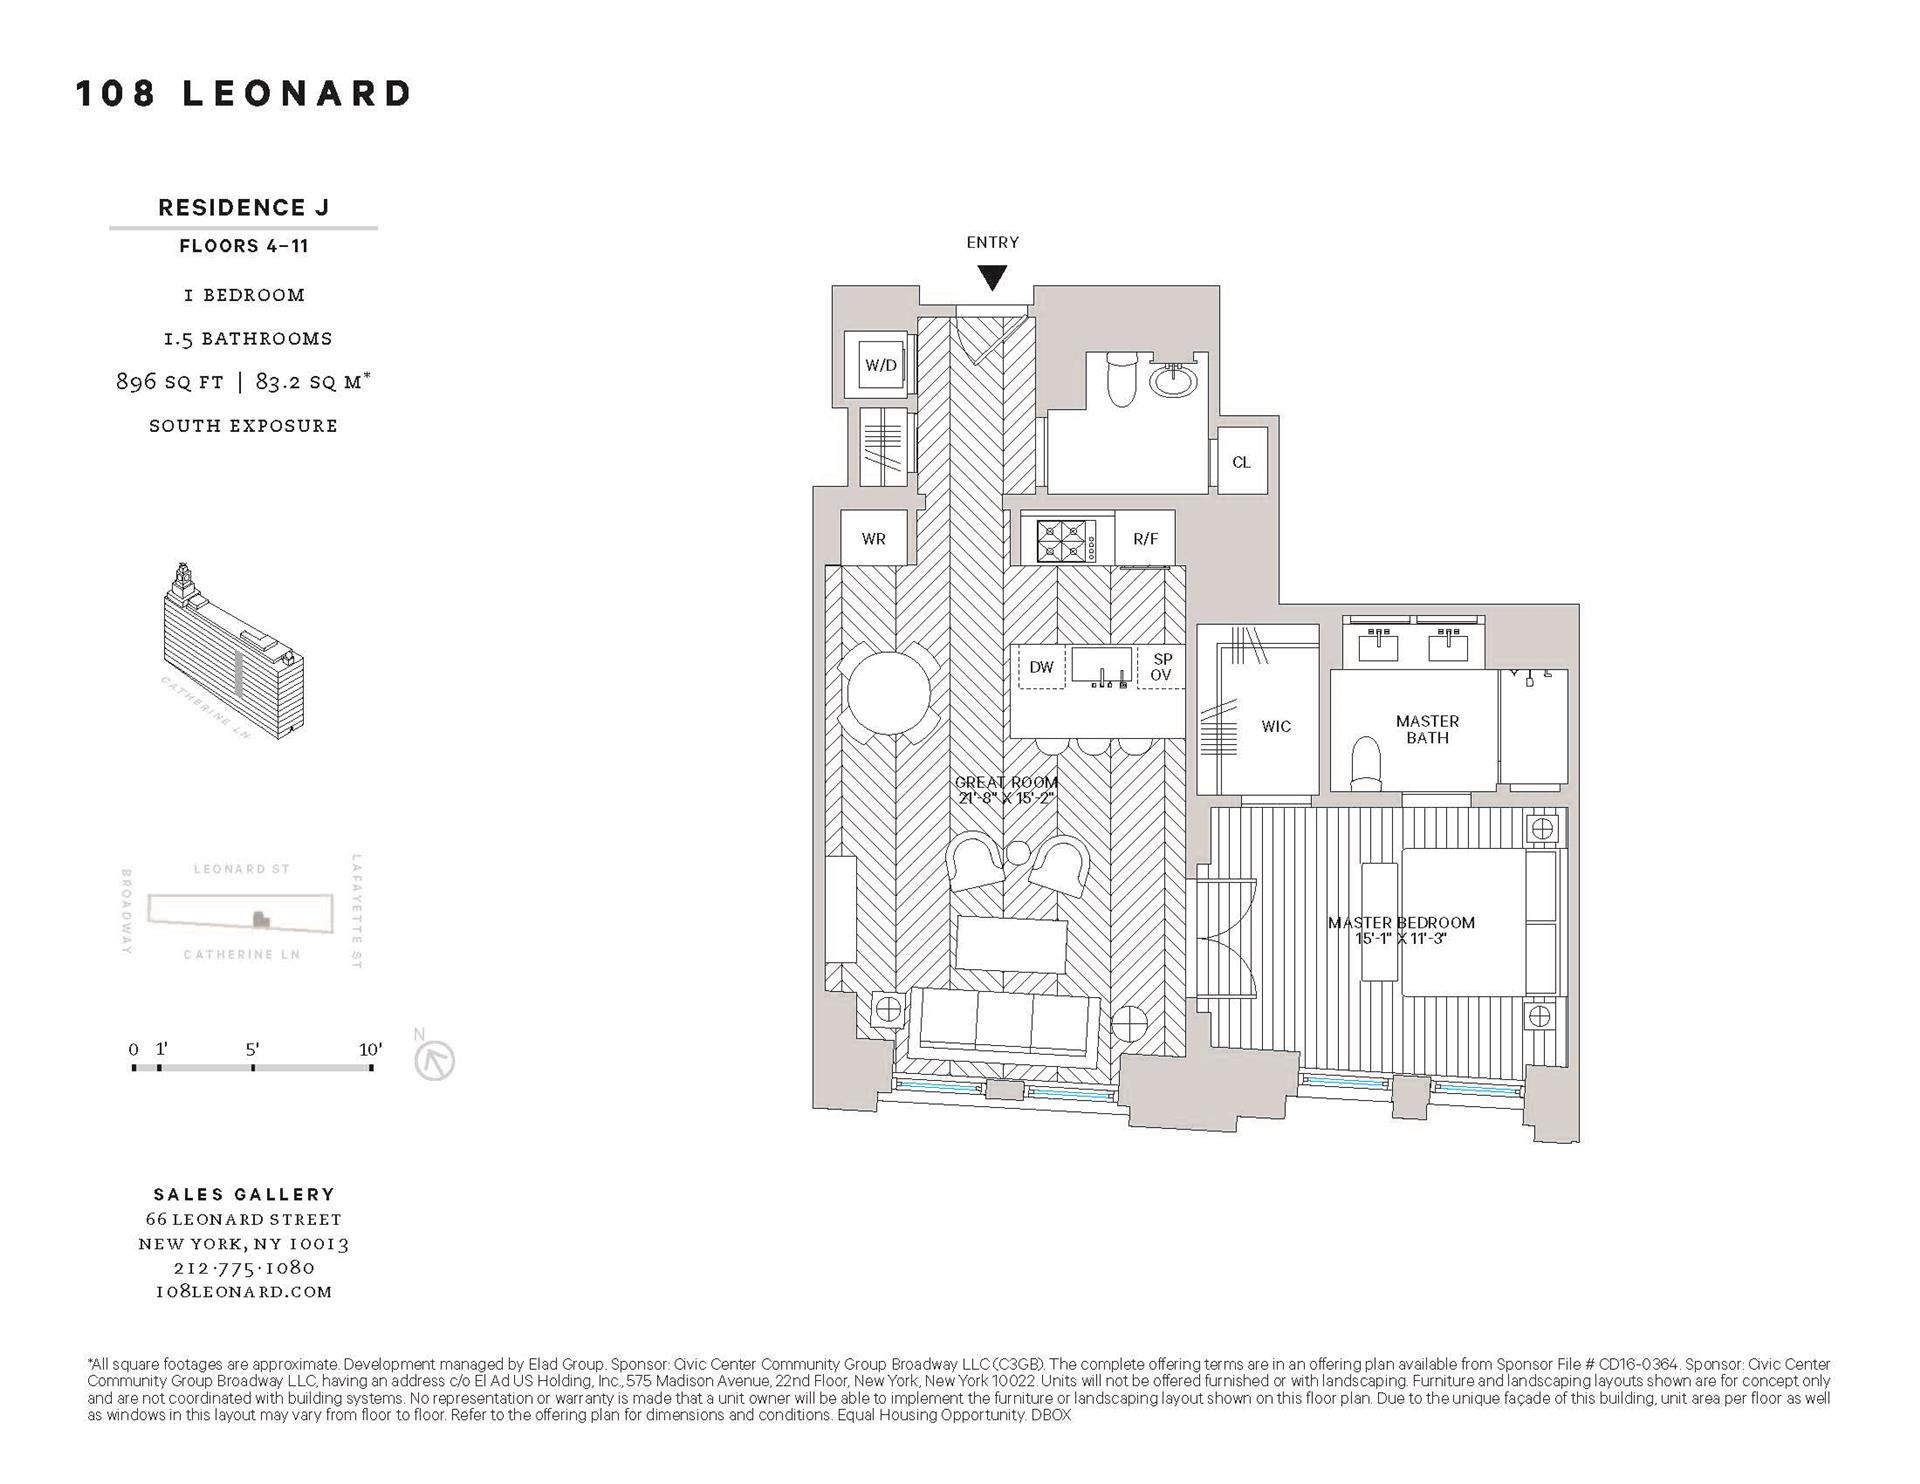 Floor plan of 108 Leonard St, 8J - TriBeCa, New York